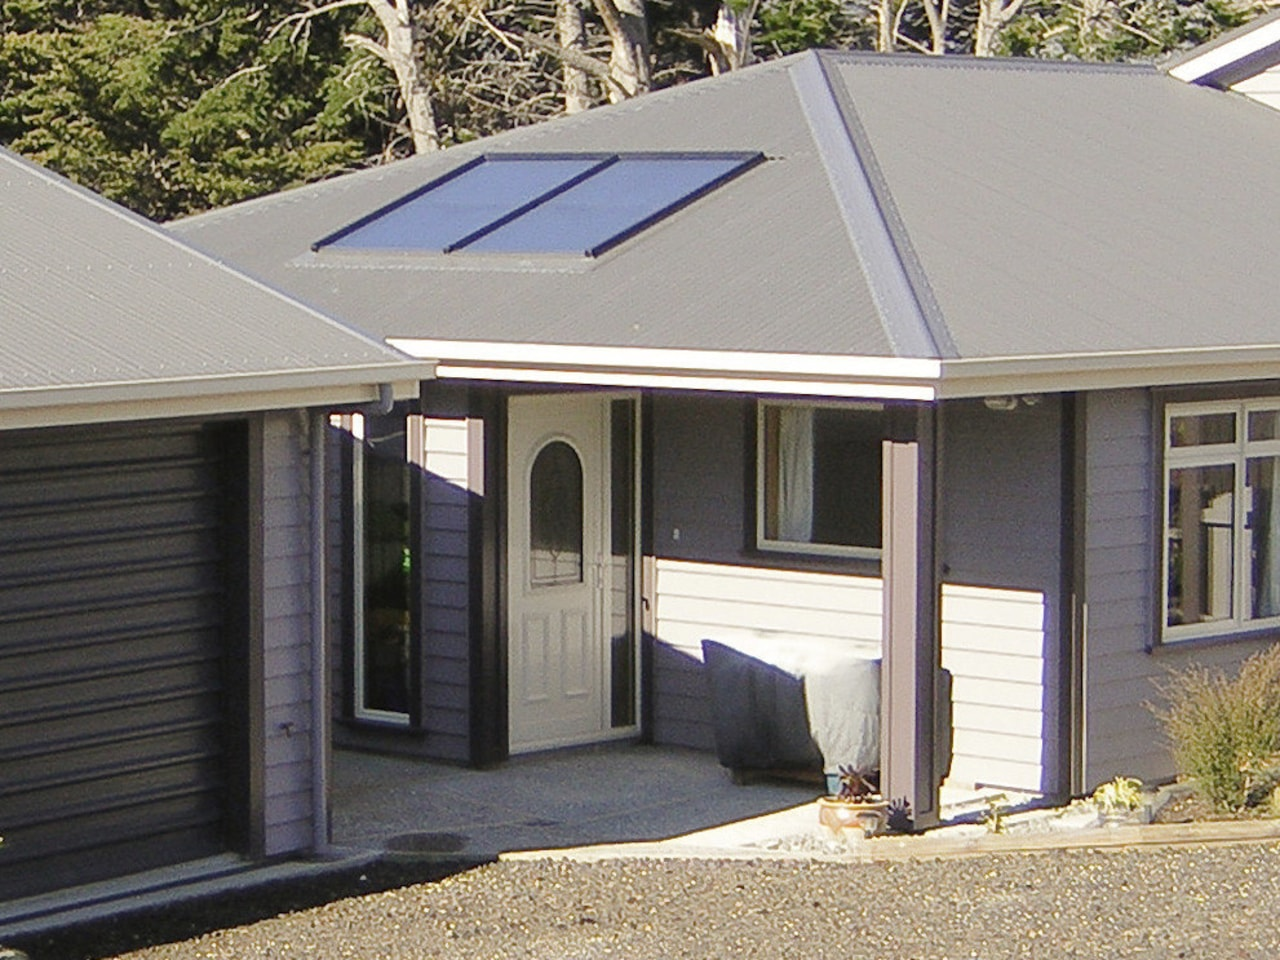 This large home efficiently uses solar energy thanks home, house, property, real estate, roof, siding, window, gray, black